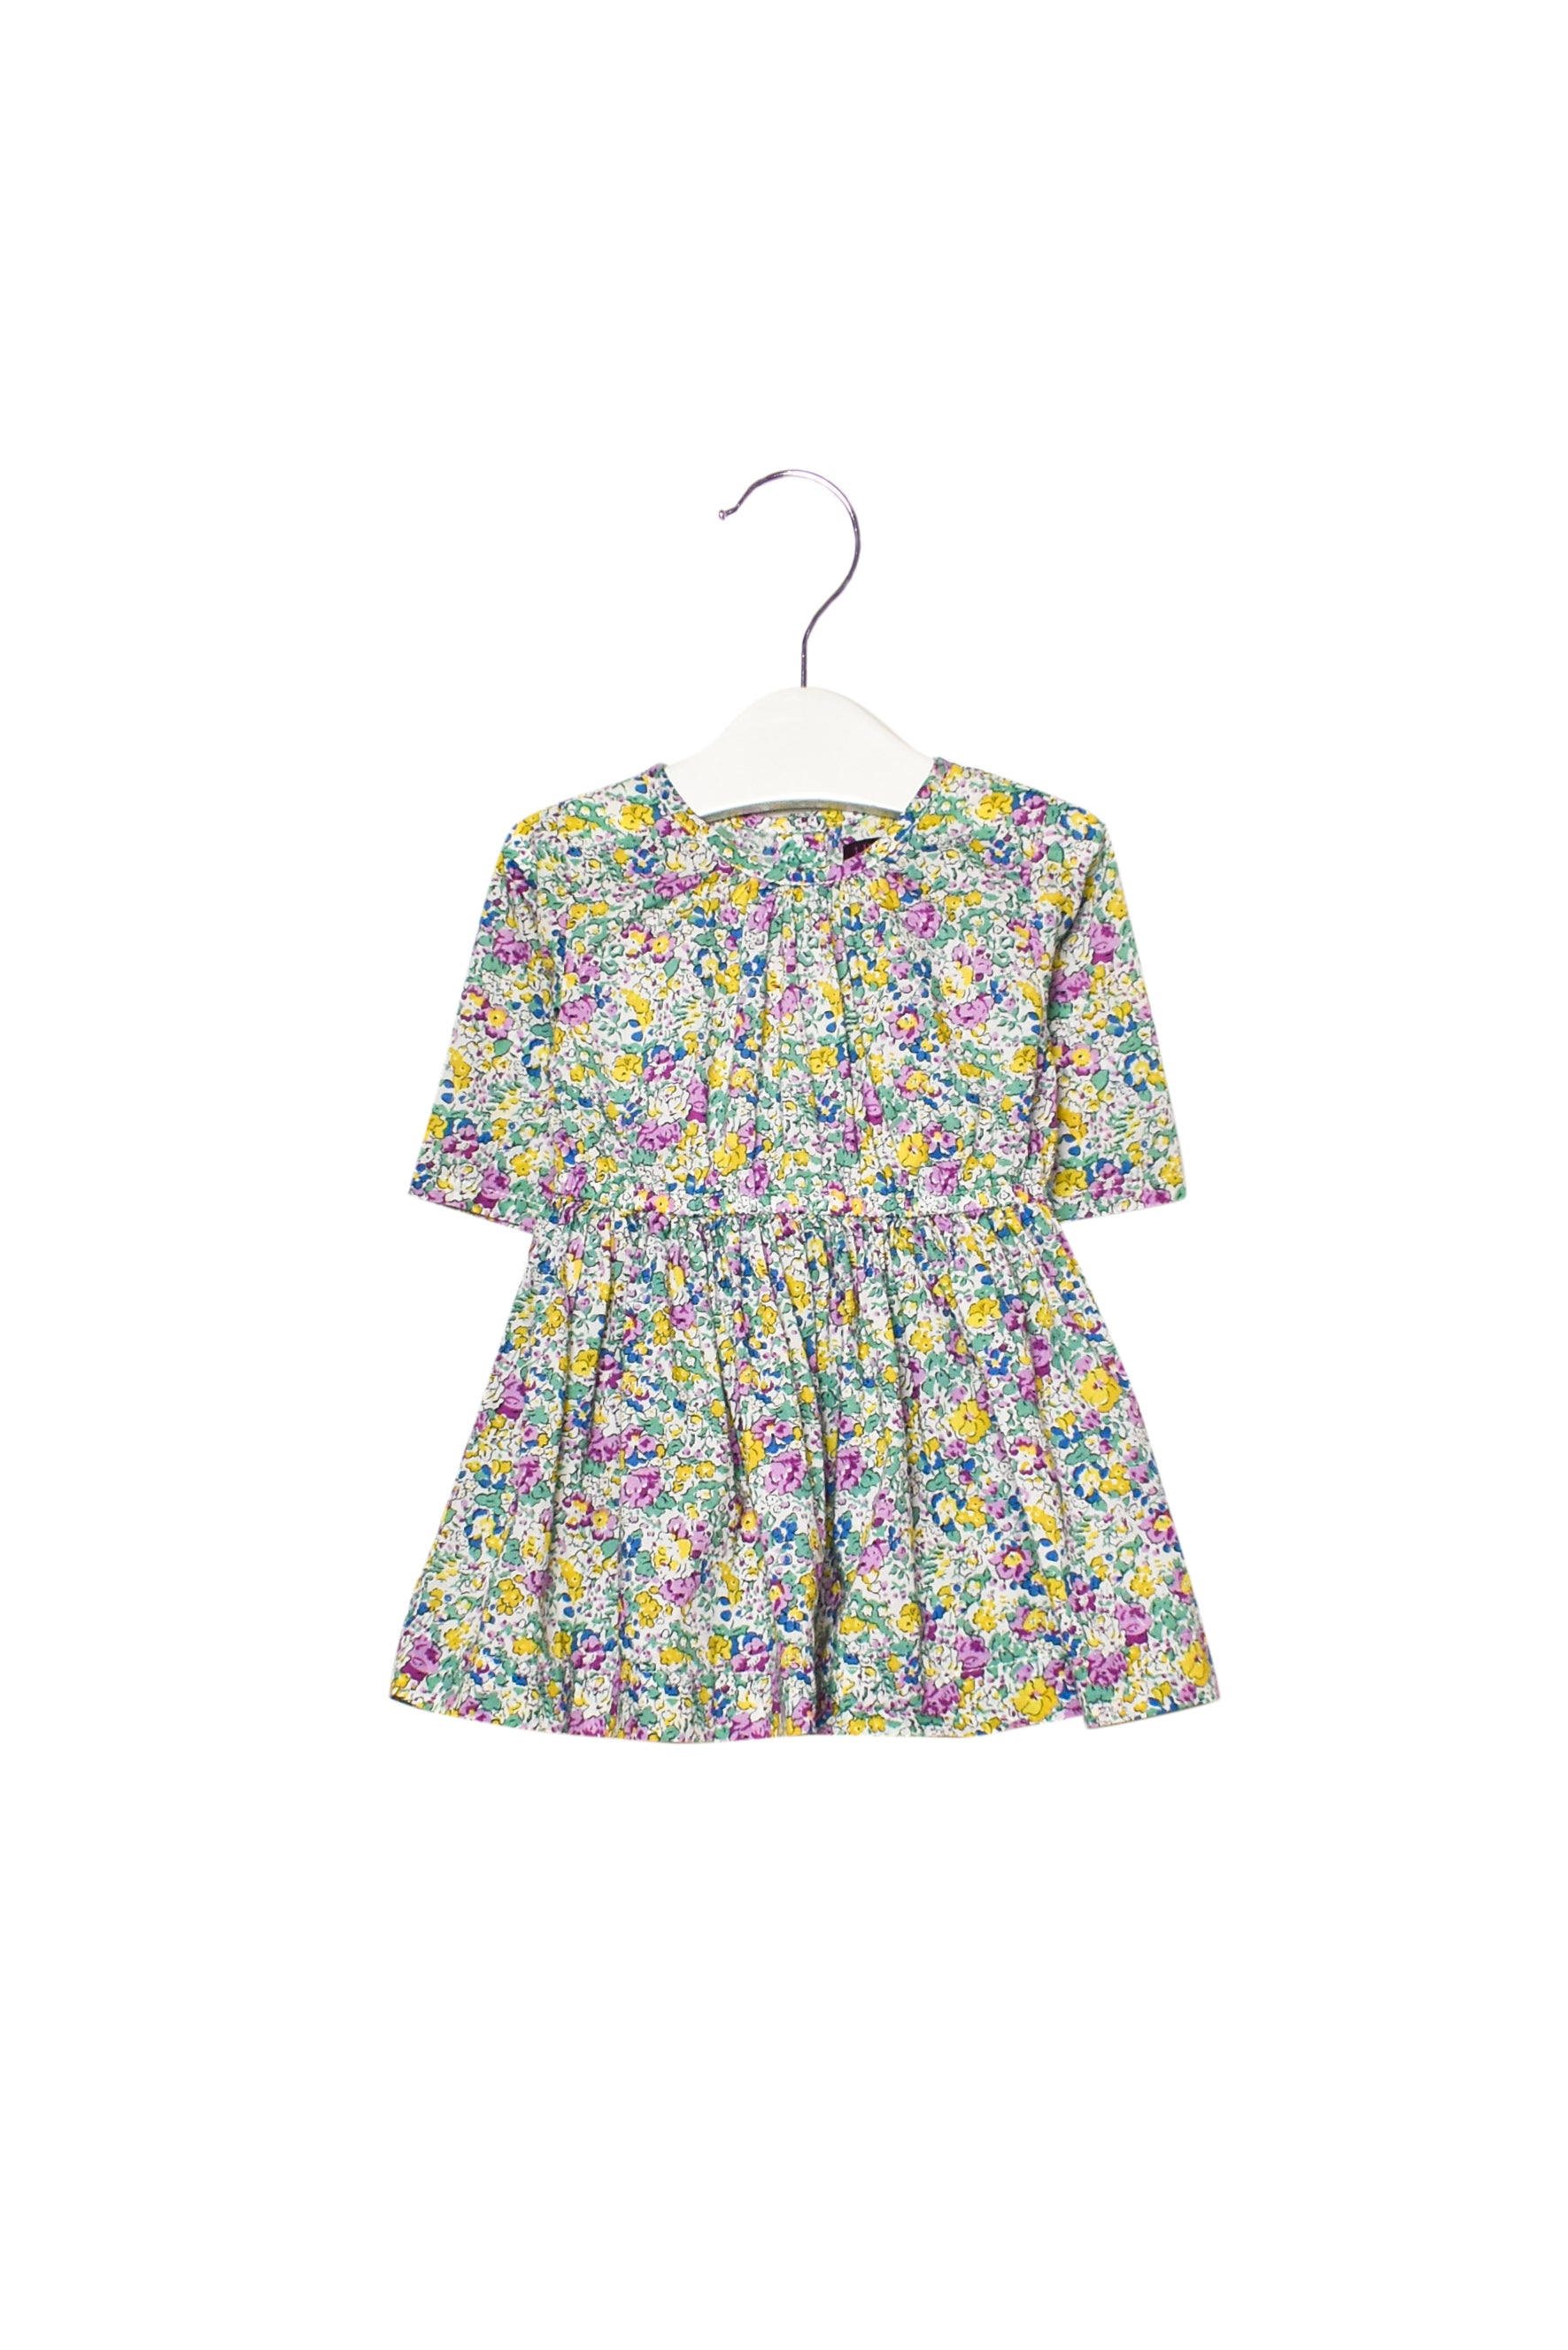 10011990 Liberty London Baby ~ Dress 0-6M at Retykle